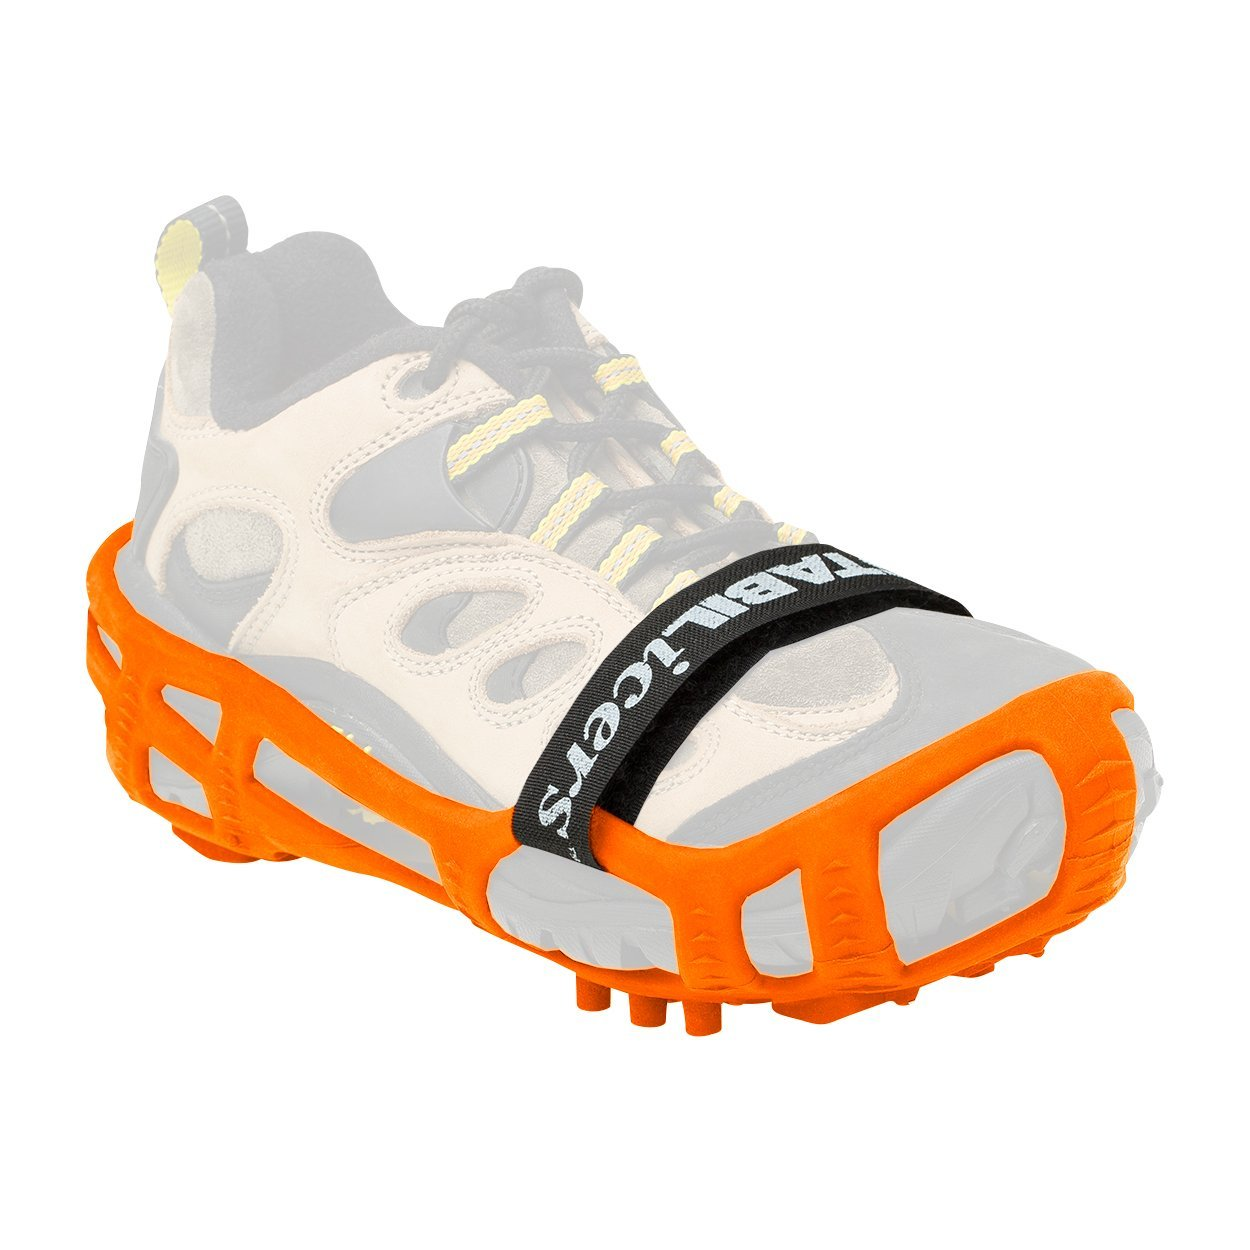 STABILicers Walk with Powder Strap, Snow and Ice Traction Cleats for Shoes and Boots, Made in USA, Orange, Size LG